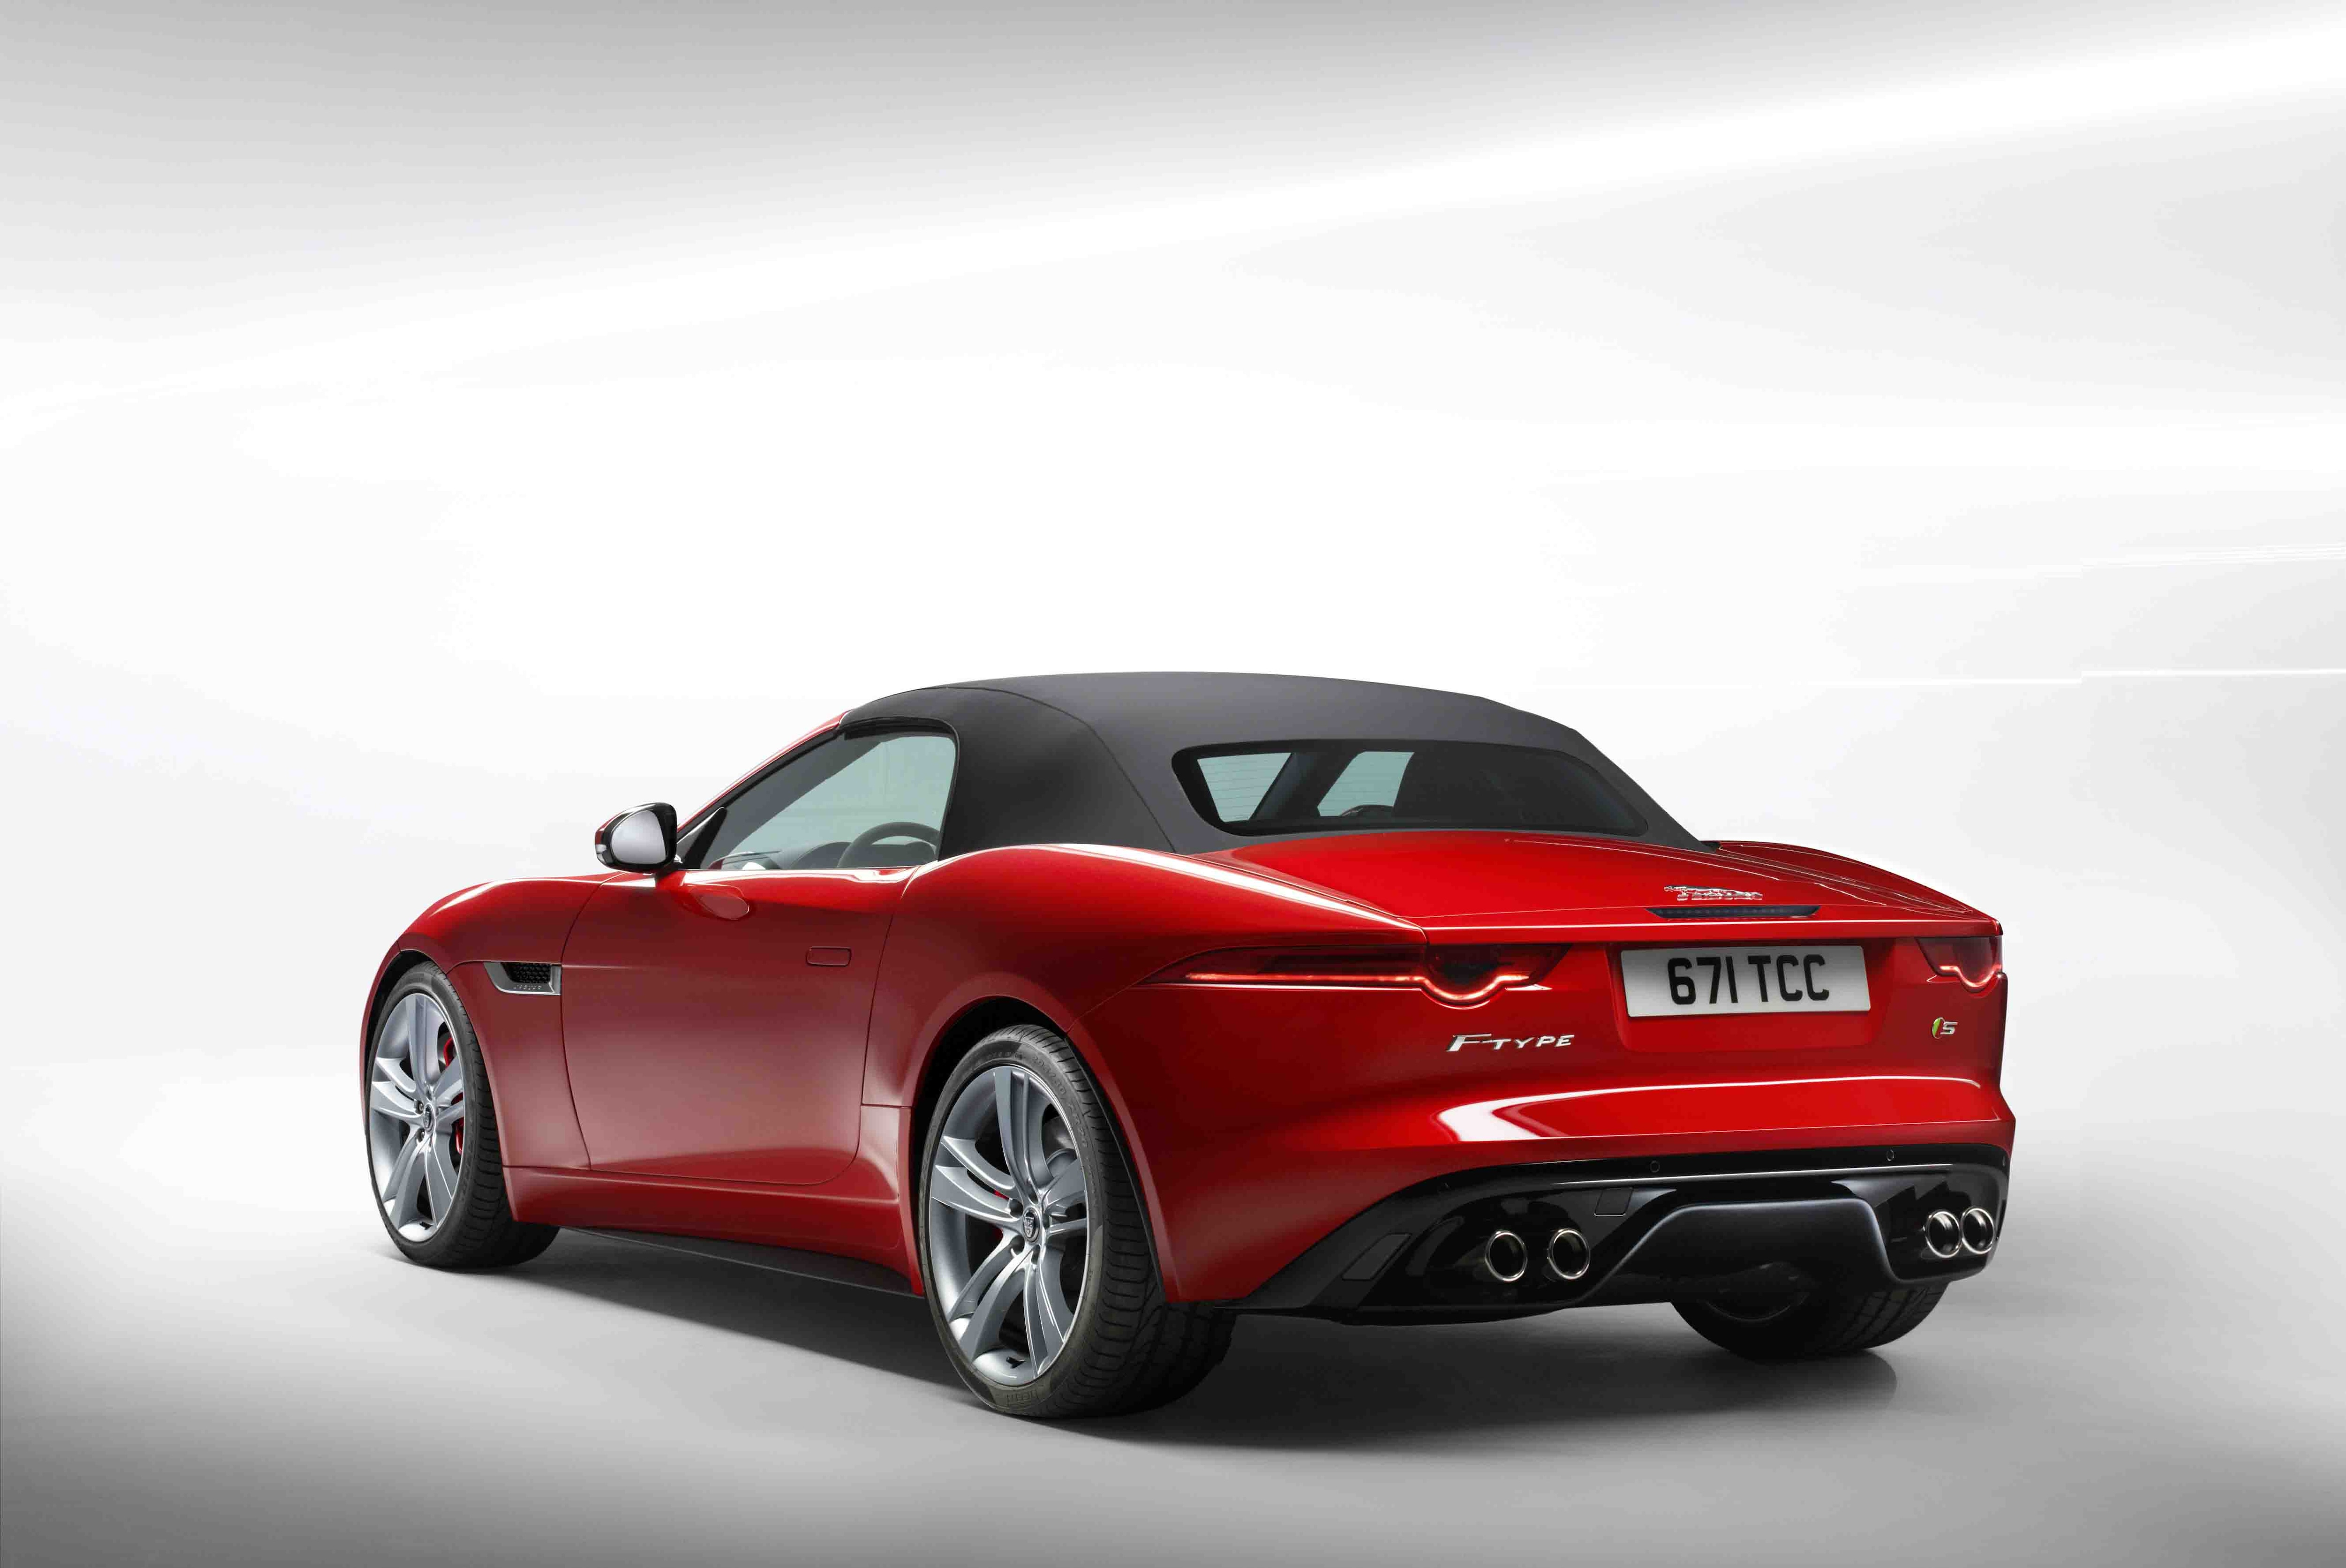 jaguar f type india price review images jaguar cars. Black Bedroom Furniture Sets. Home Design Ideas